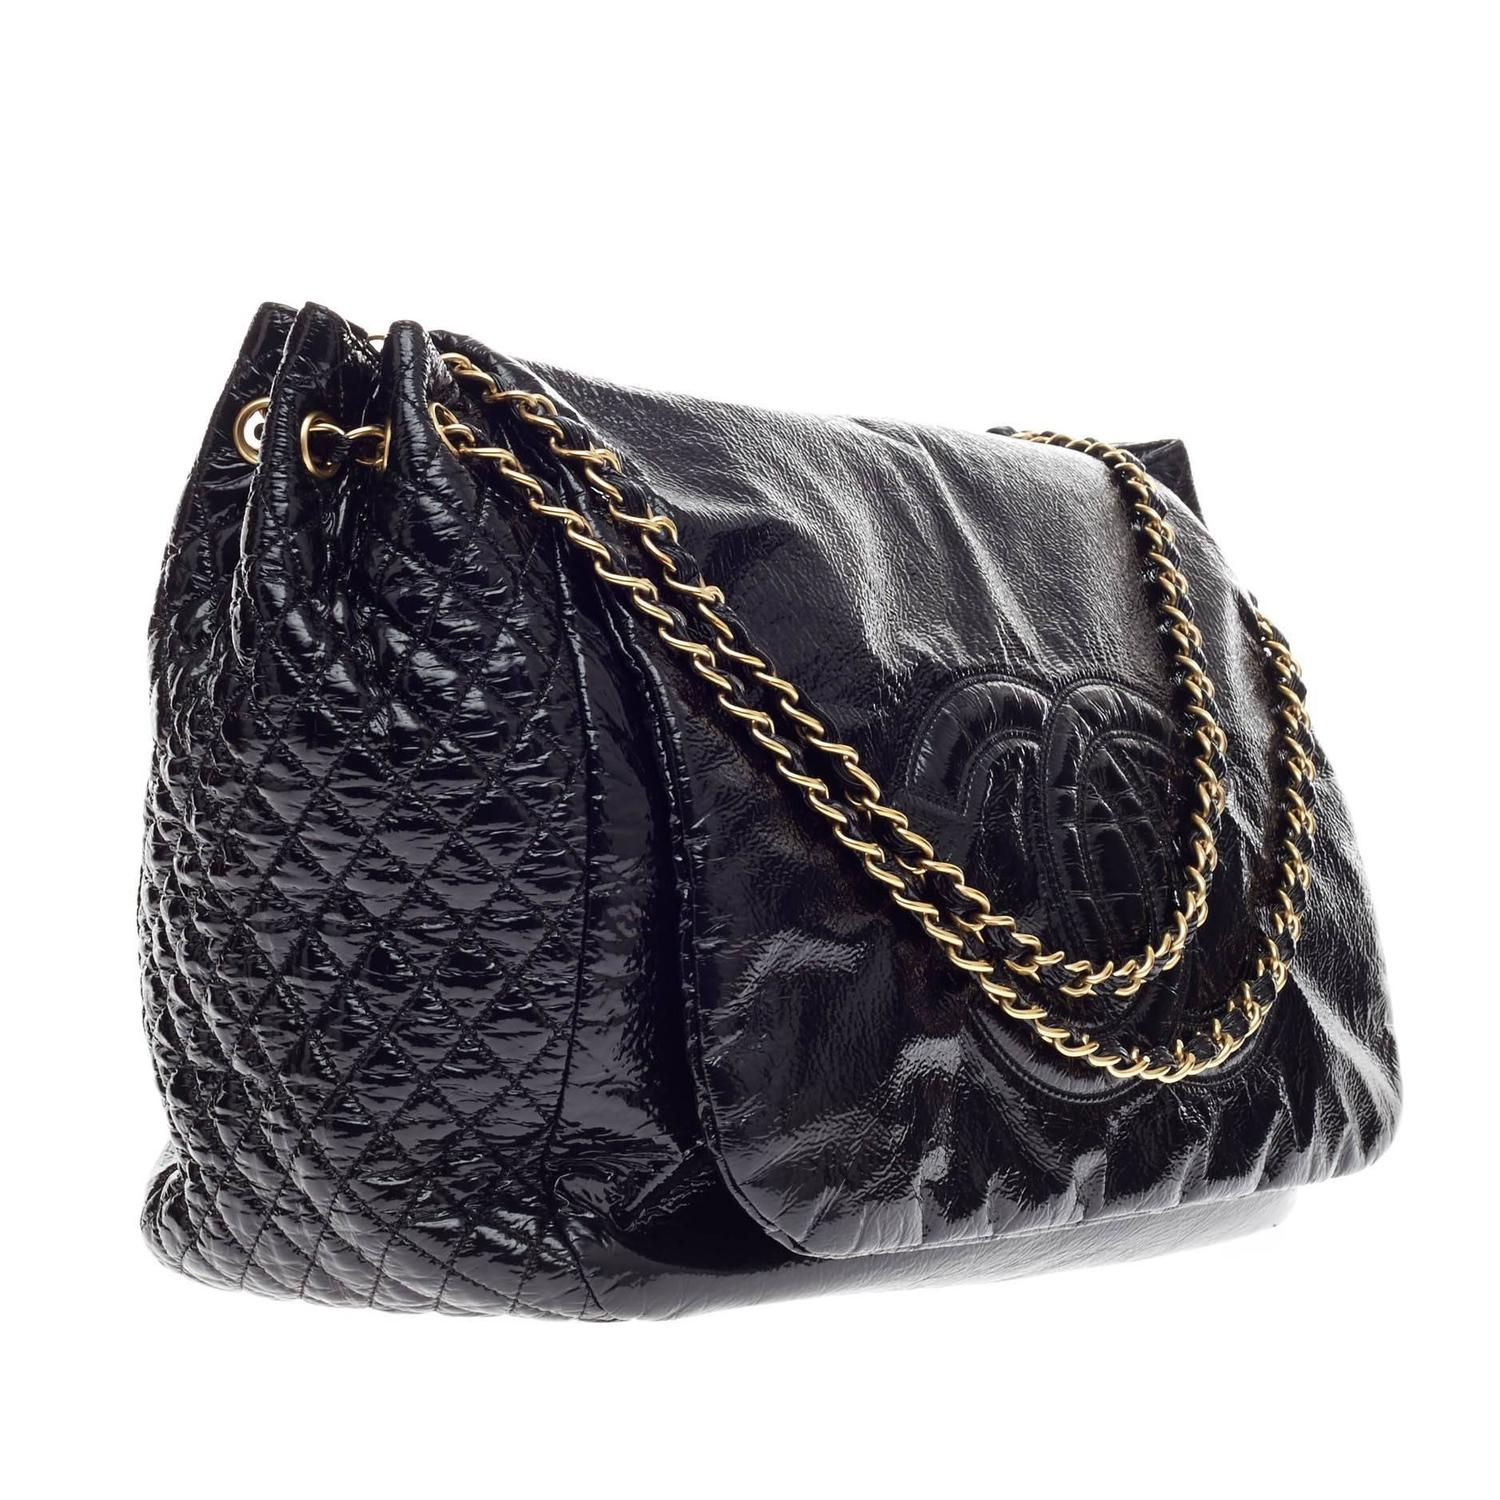 5317bd9703ed16 Chanel Rock and Chain Flap Bag Patent Large at 1stdibs